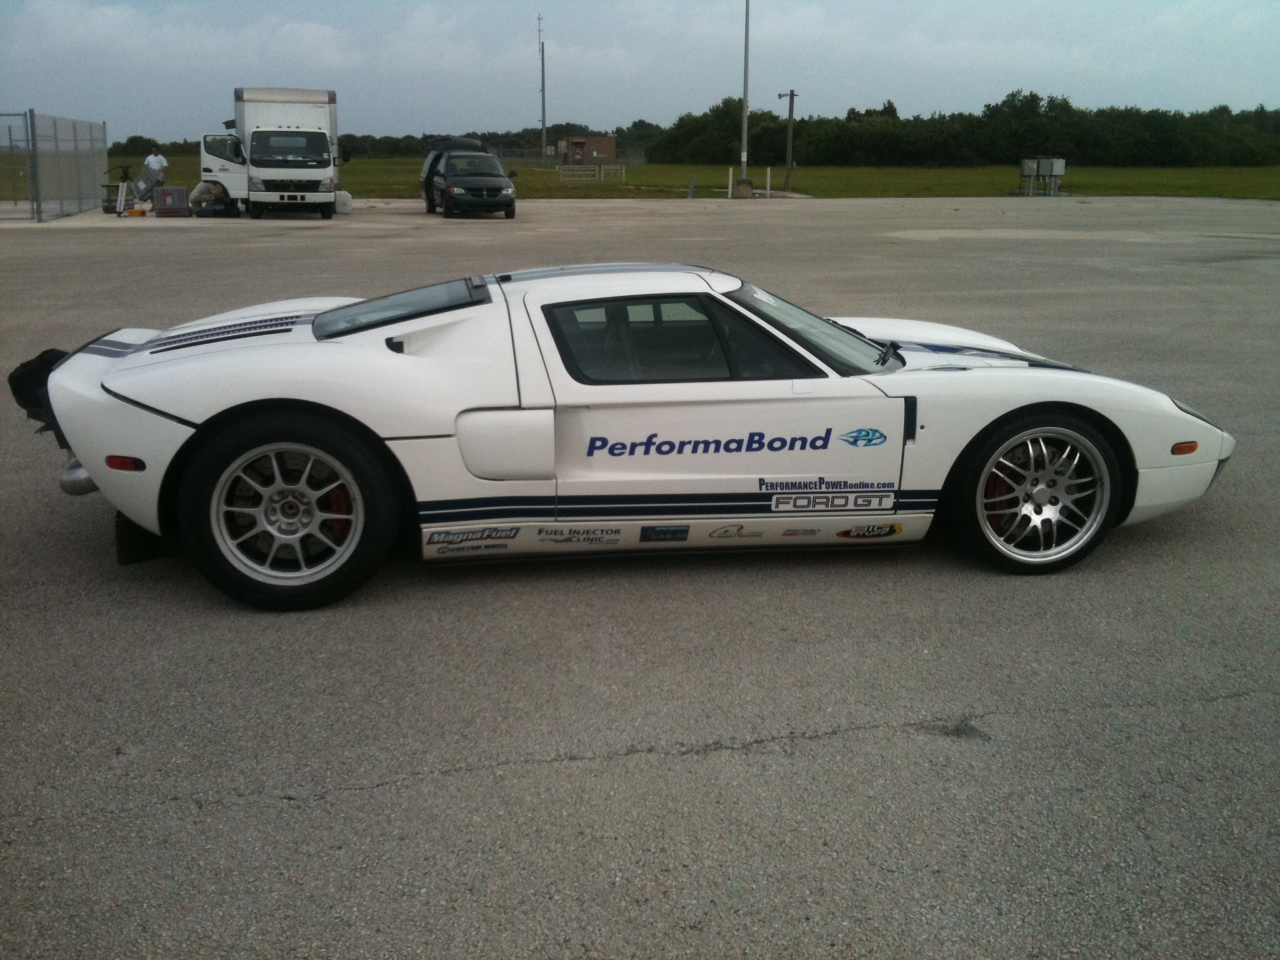 Ideas Inventions And Innovations Fast Furious Modified Ford Gt Sets World Speed Record For Street Legal Car In Guinness Category Of Standing Mile